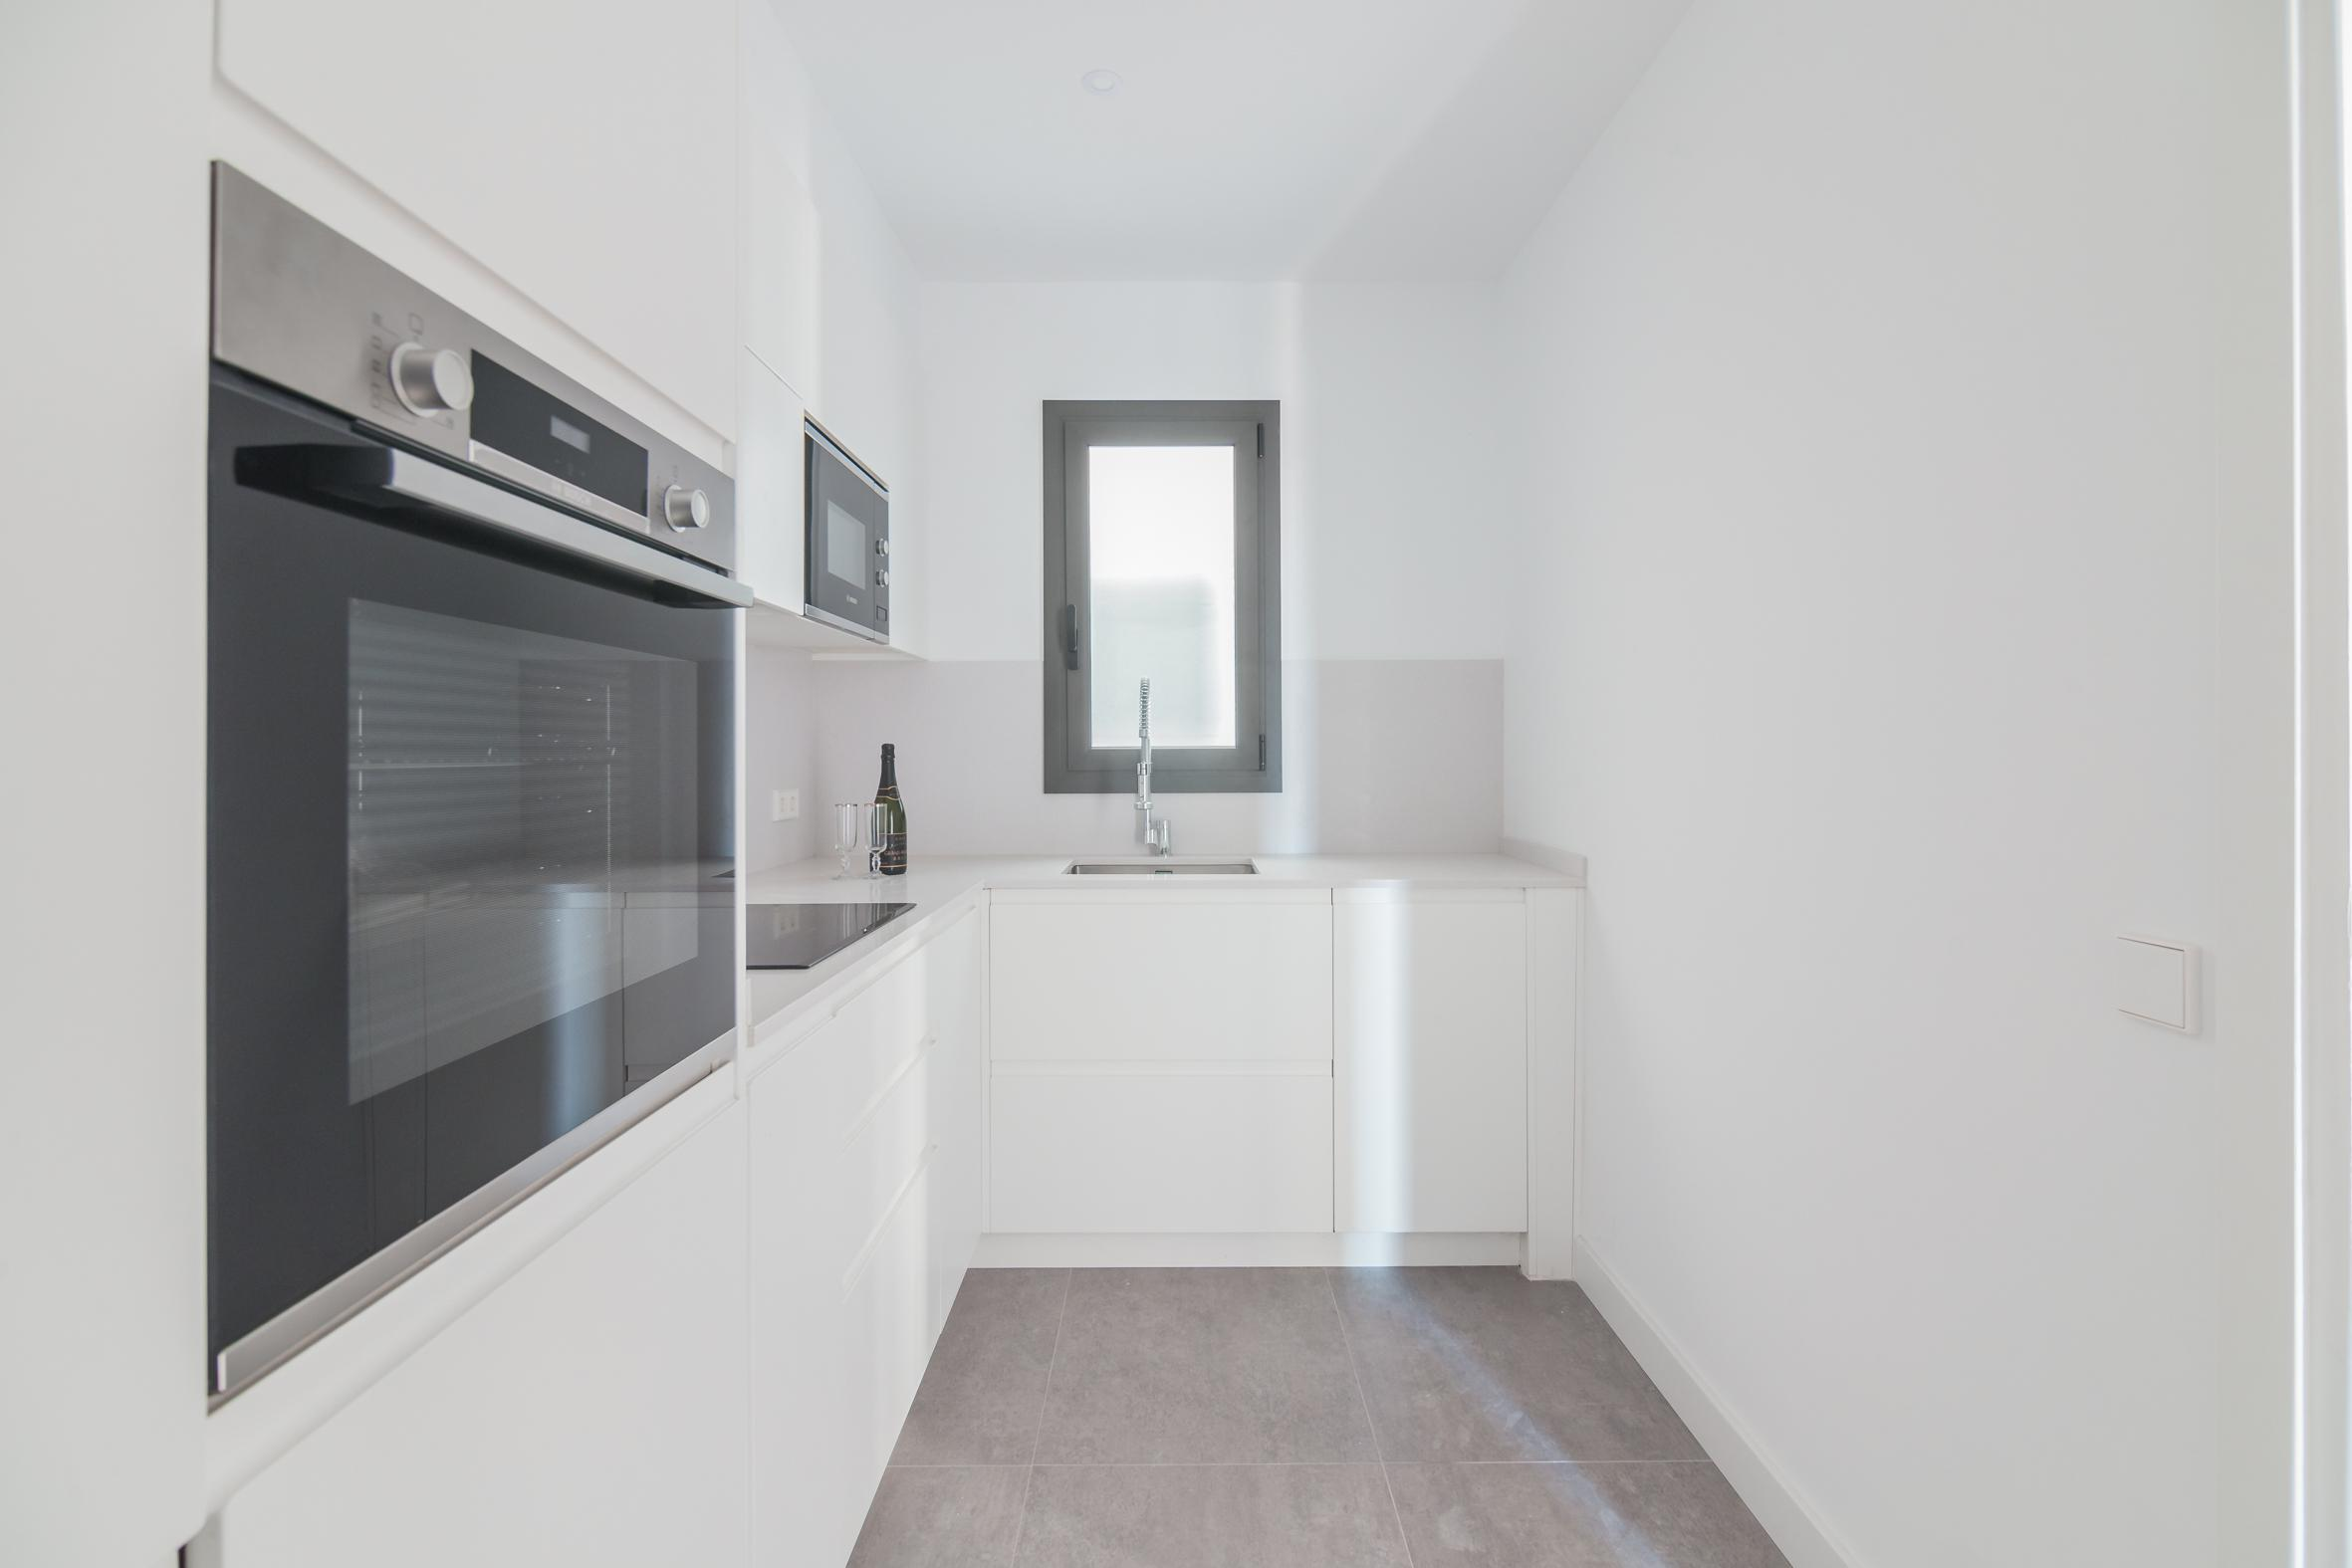 244010 Flat for sale in Ciutat Vella, Barri Gótic 13